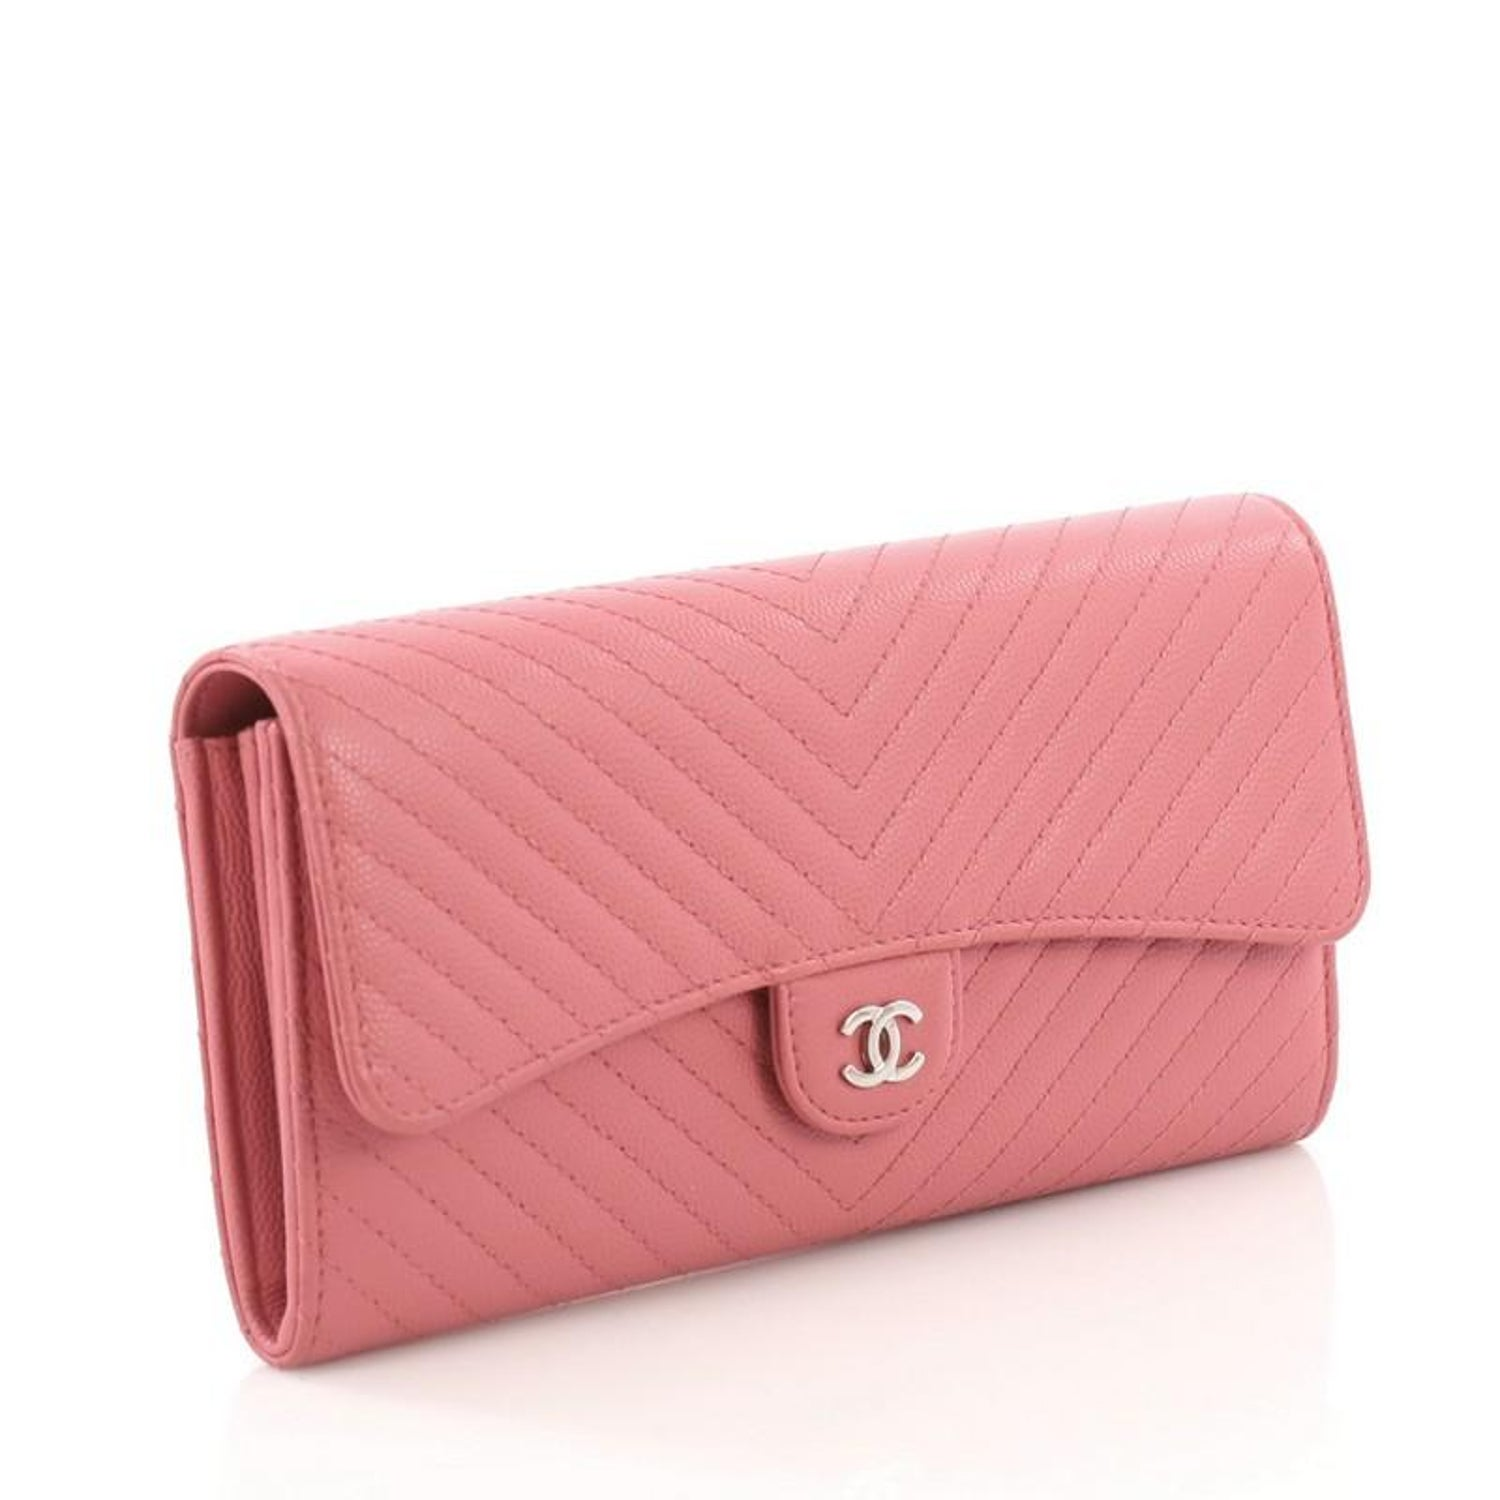 388edd9f491c Chanel CC Gusset Classic Flap Wallet Chevron Caviar Long For Sale at 1stdibs